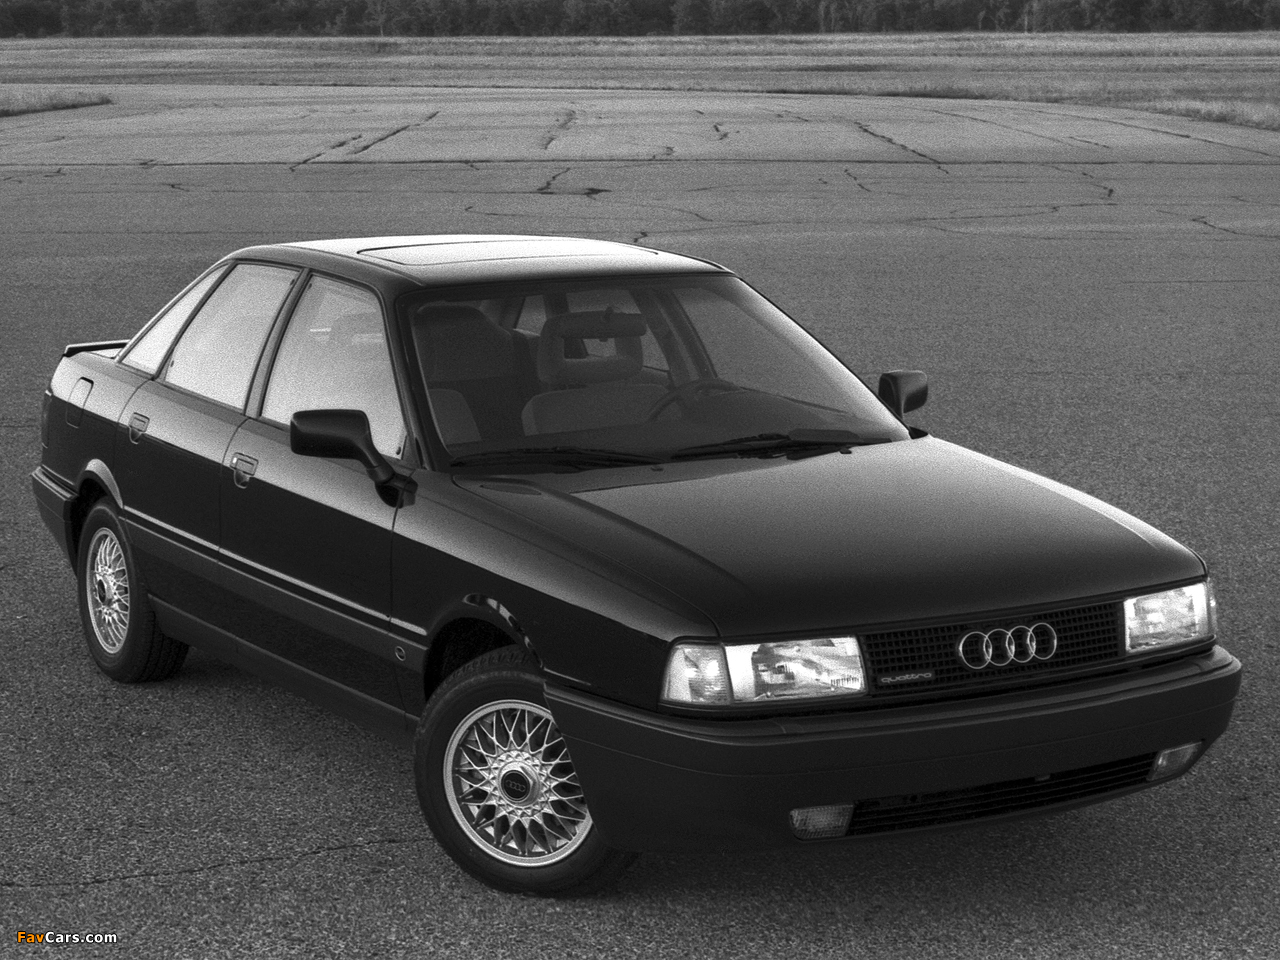 1992 audi 80 information and photos zombiedrive for Wyoming valley motors audi